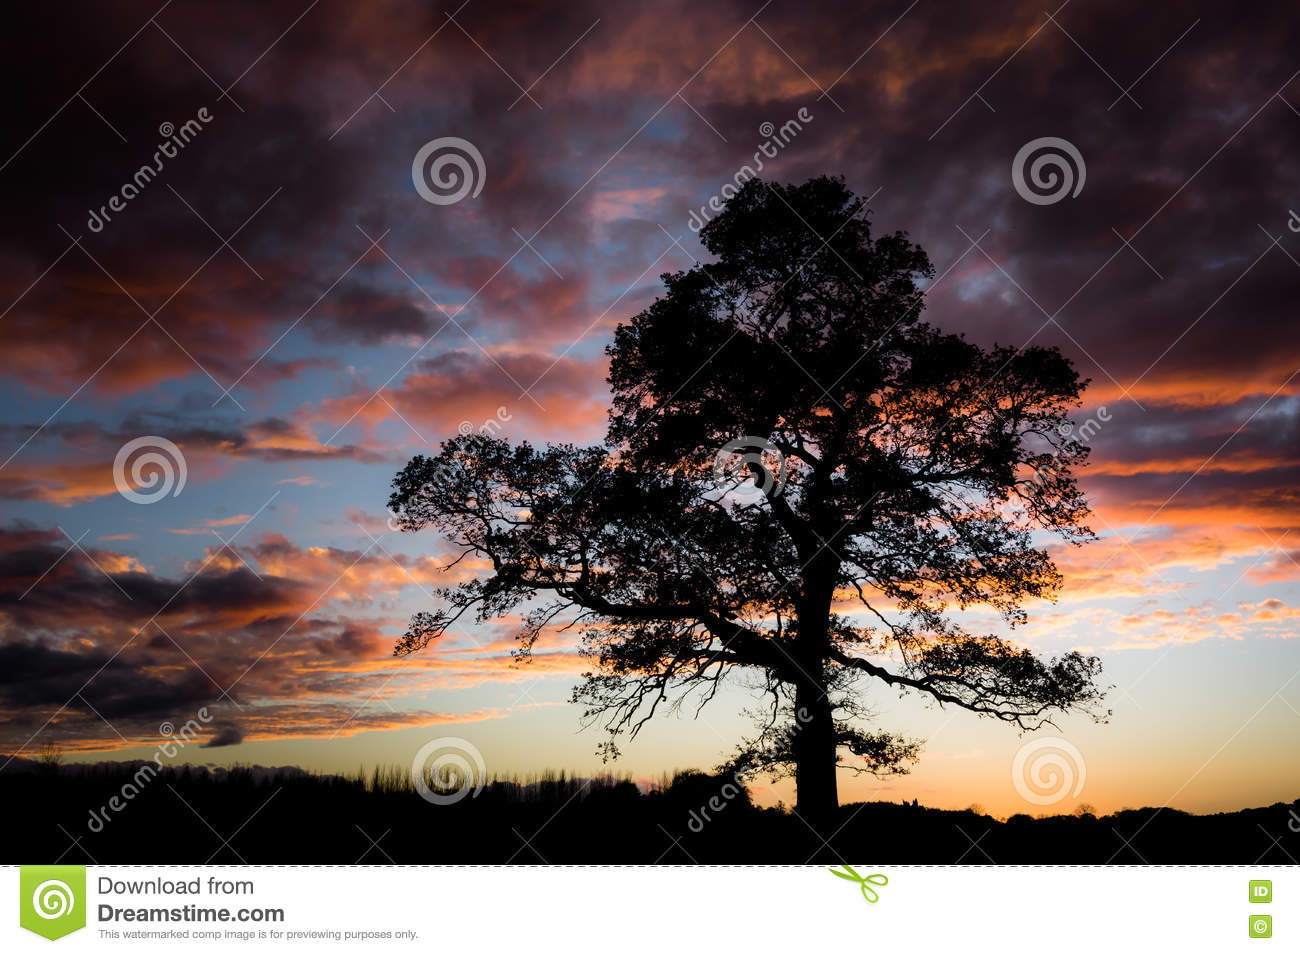 Tree silhouetted against a sunset